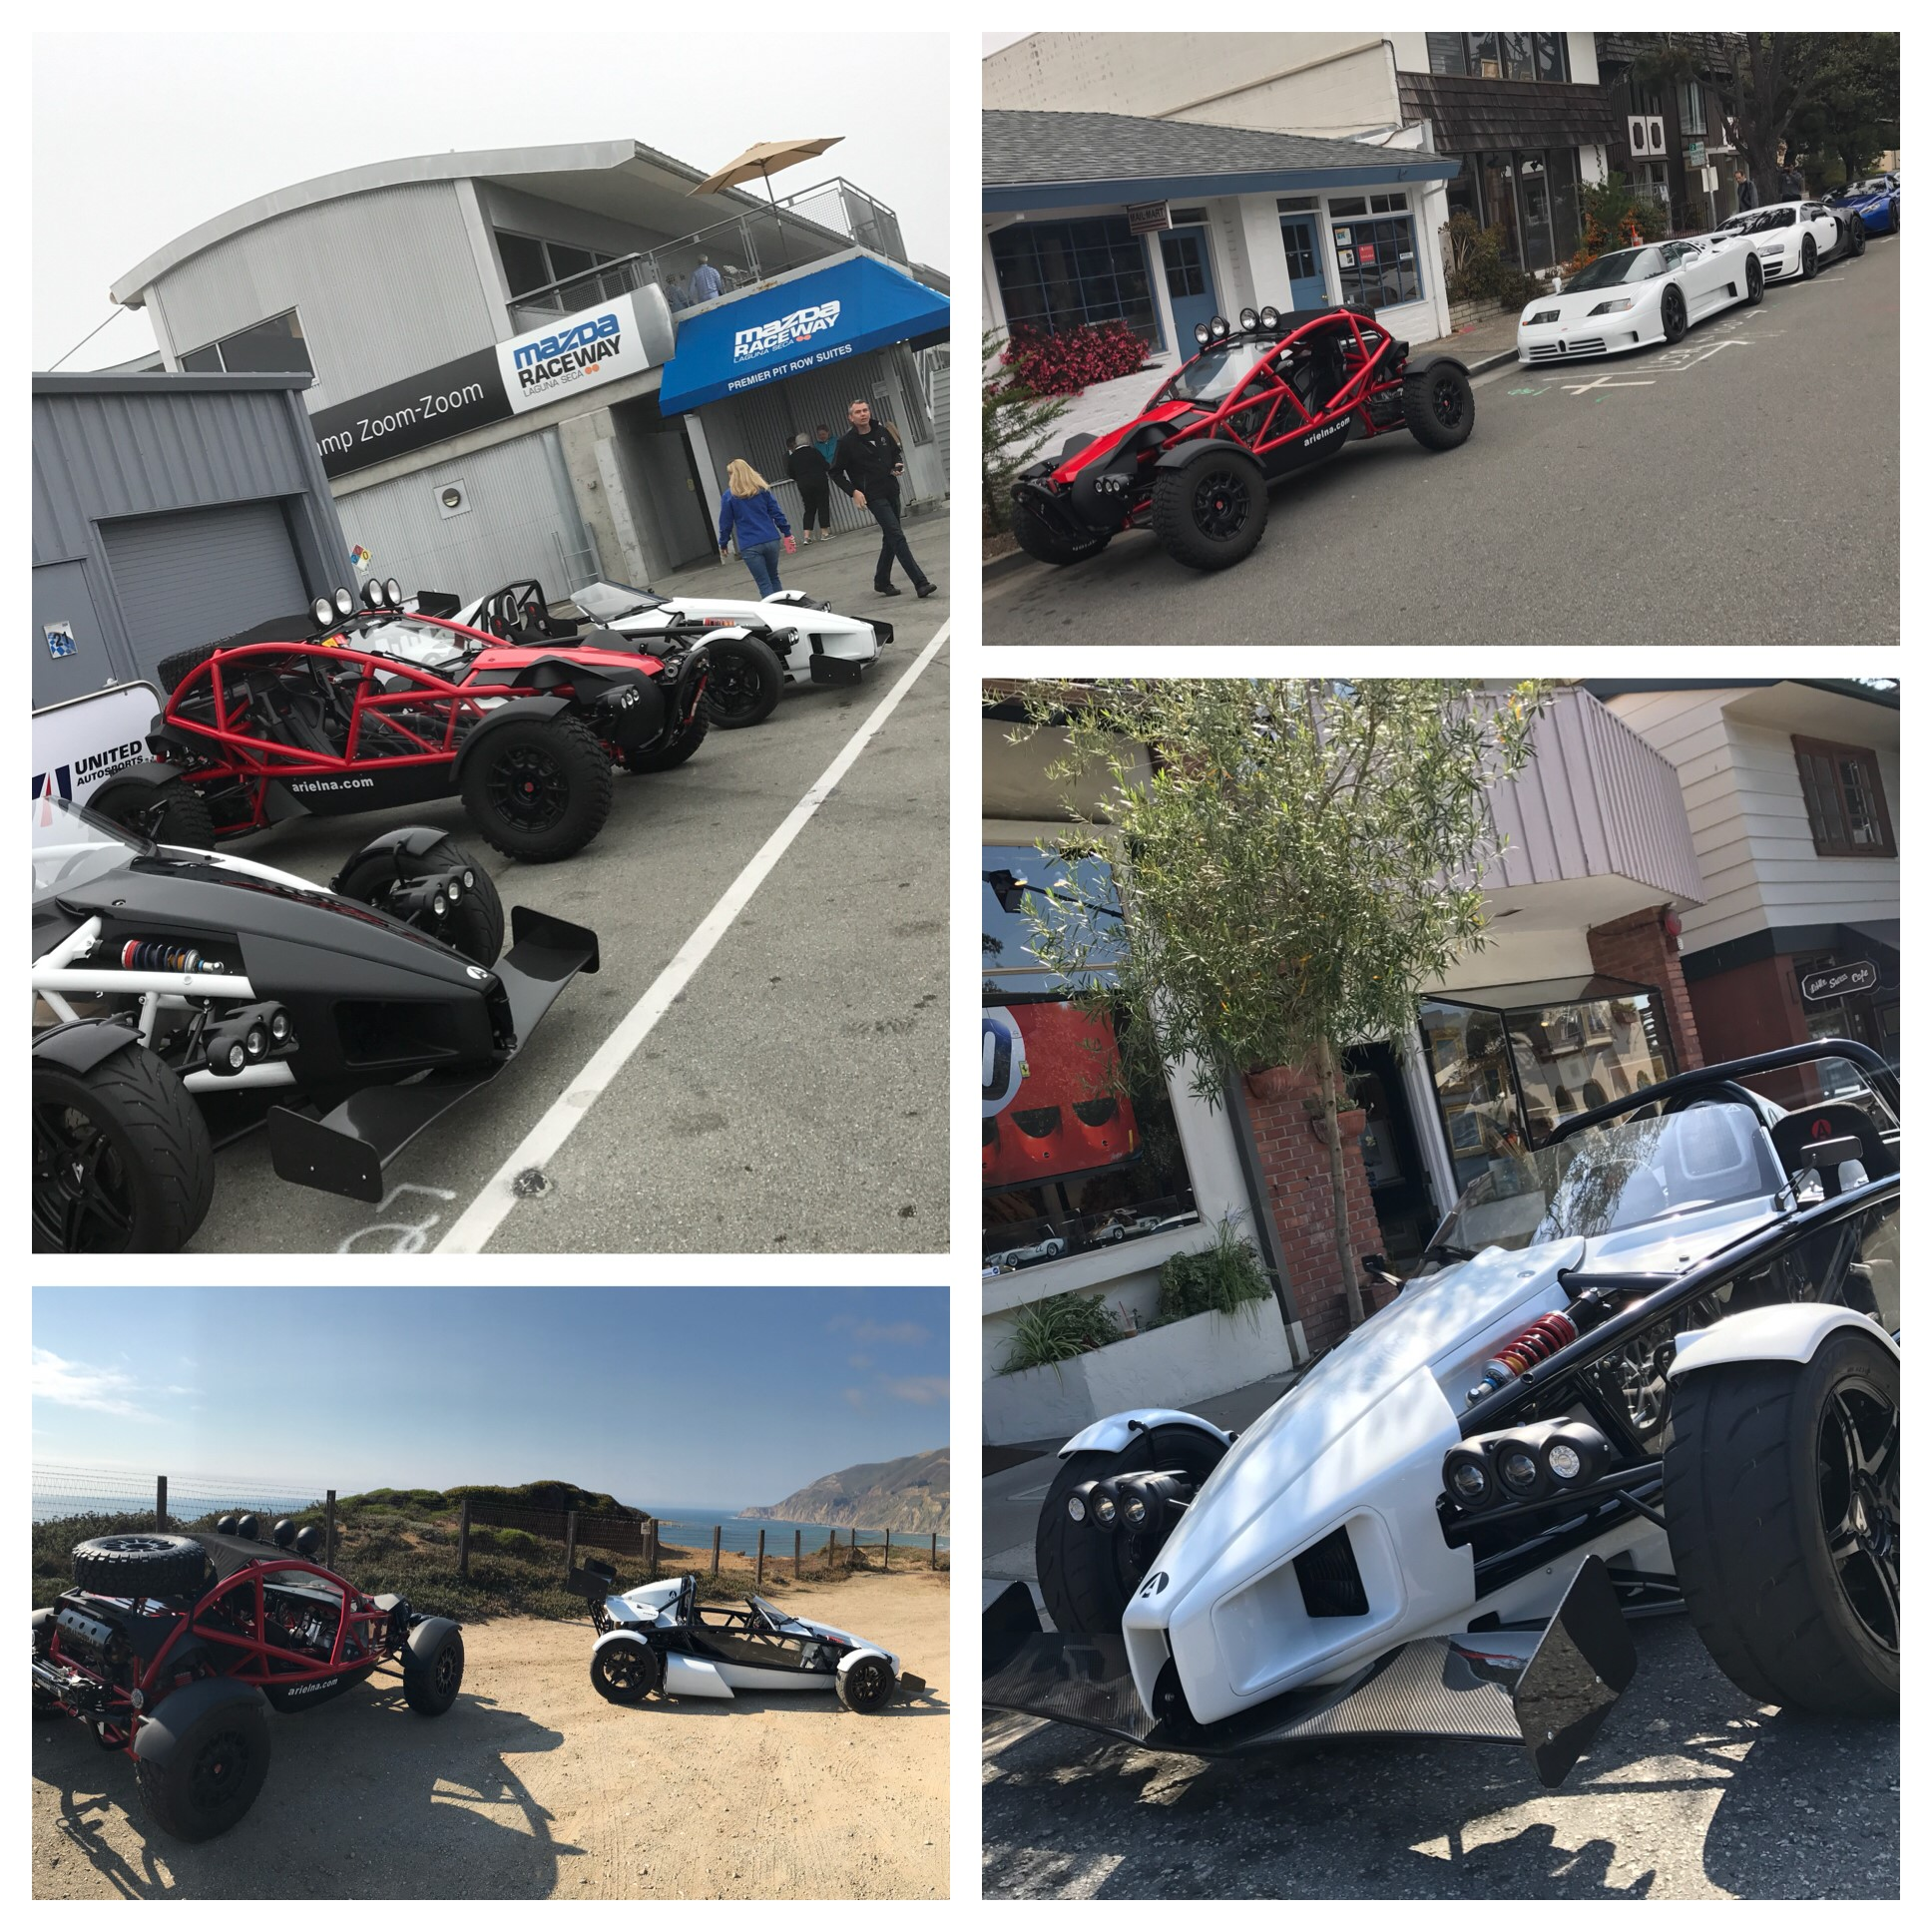 August, 2017 - Monterey Car Week is a yearly favorite